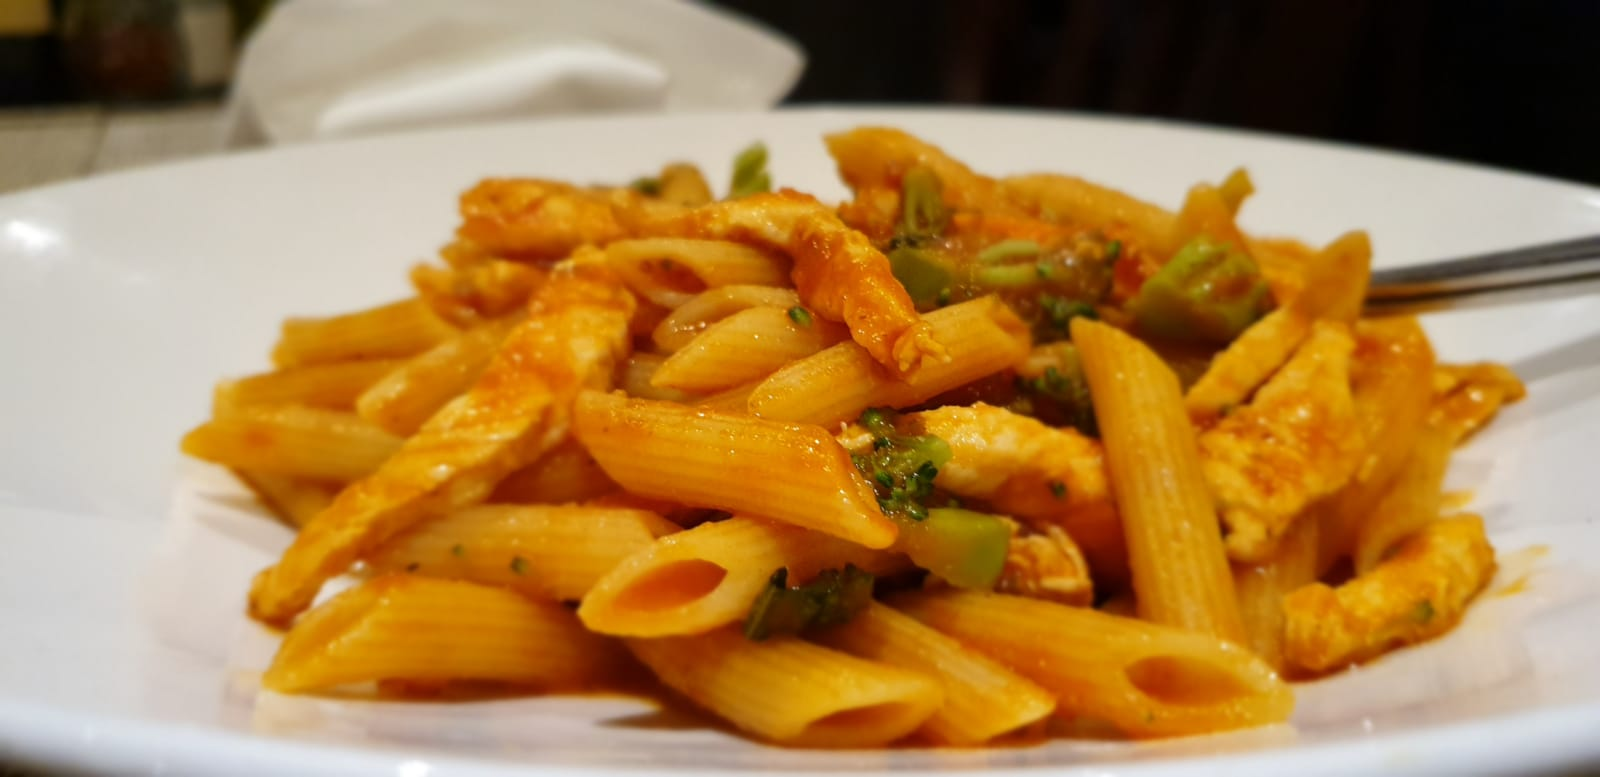 Chicken Penne with Vegetables